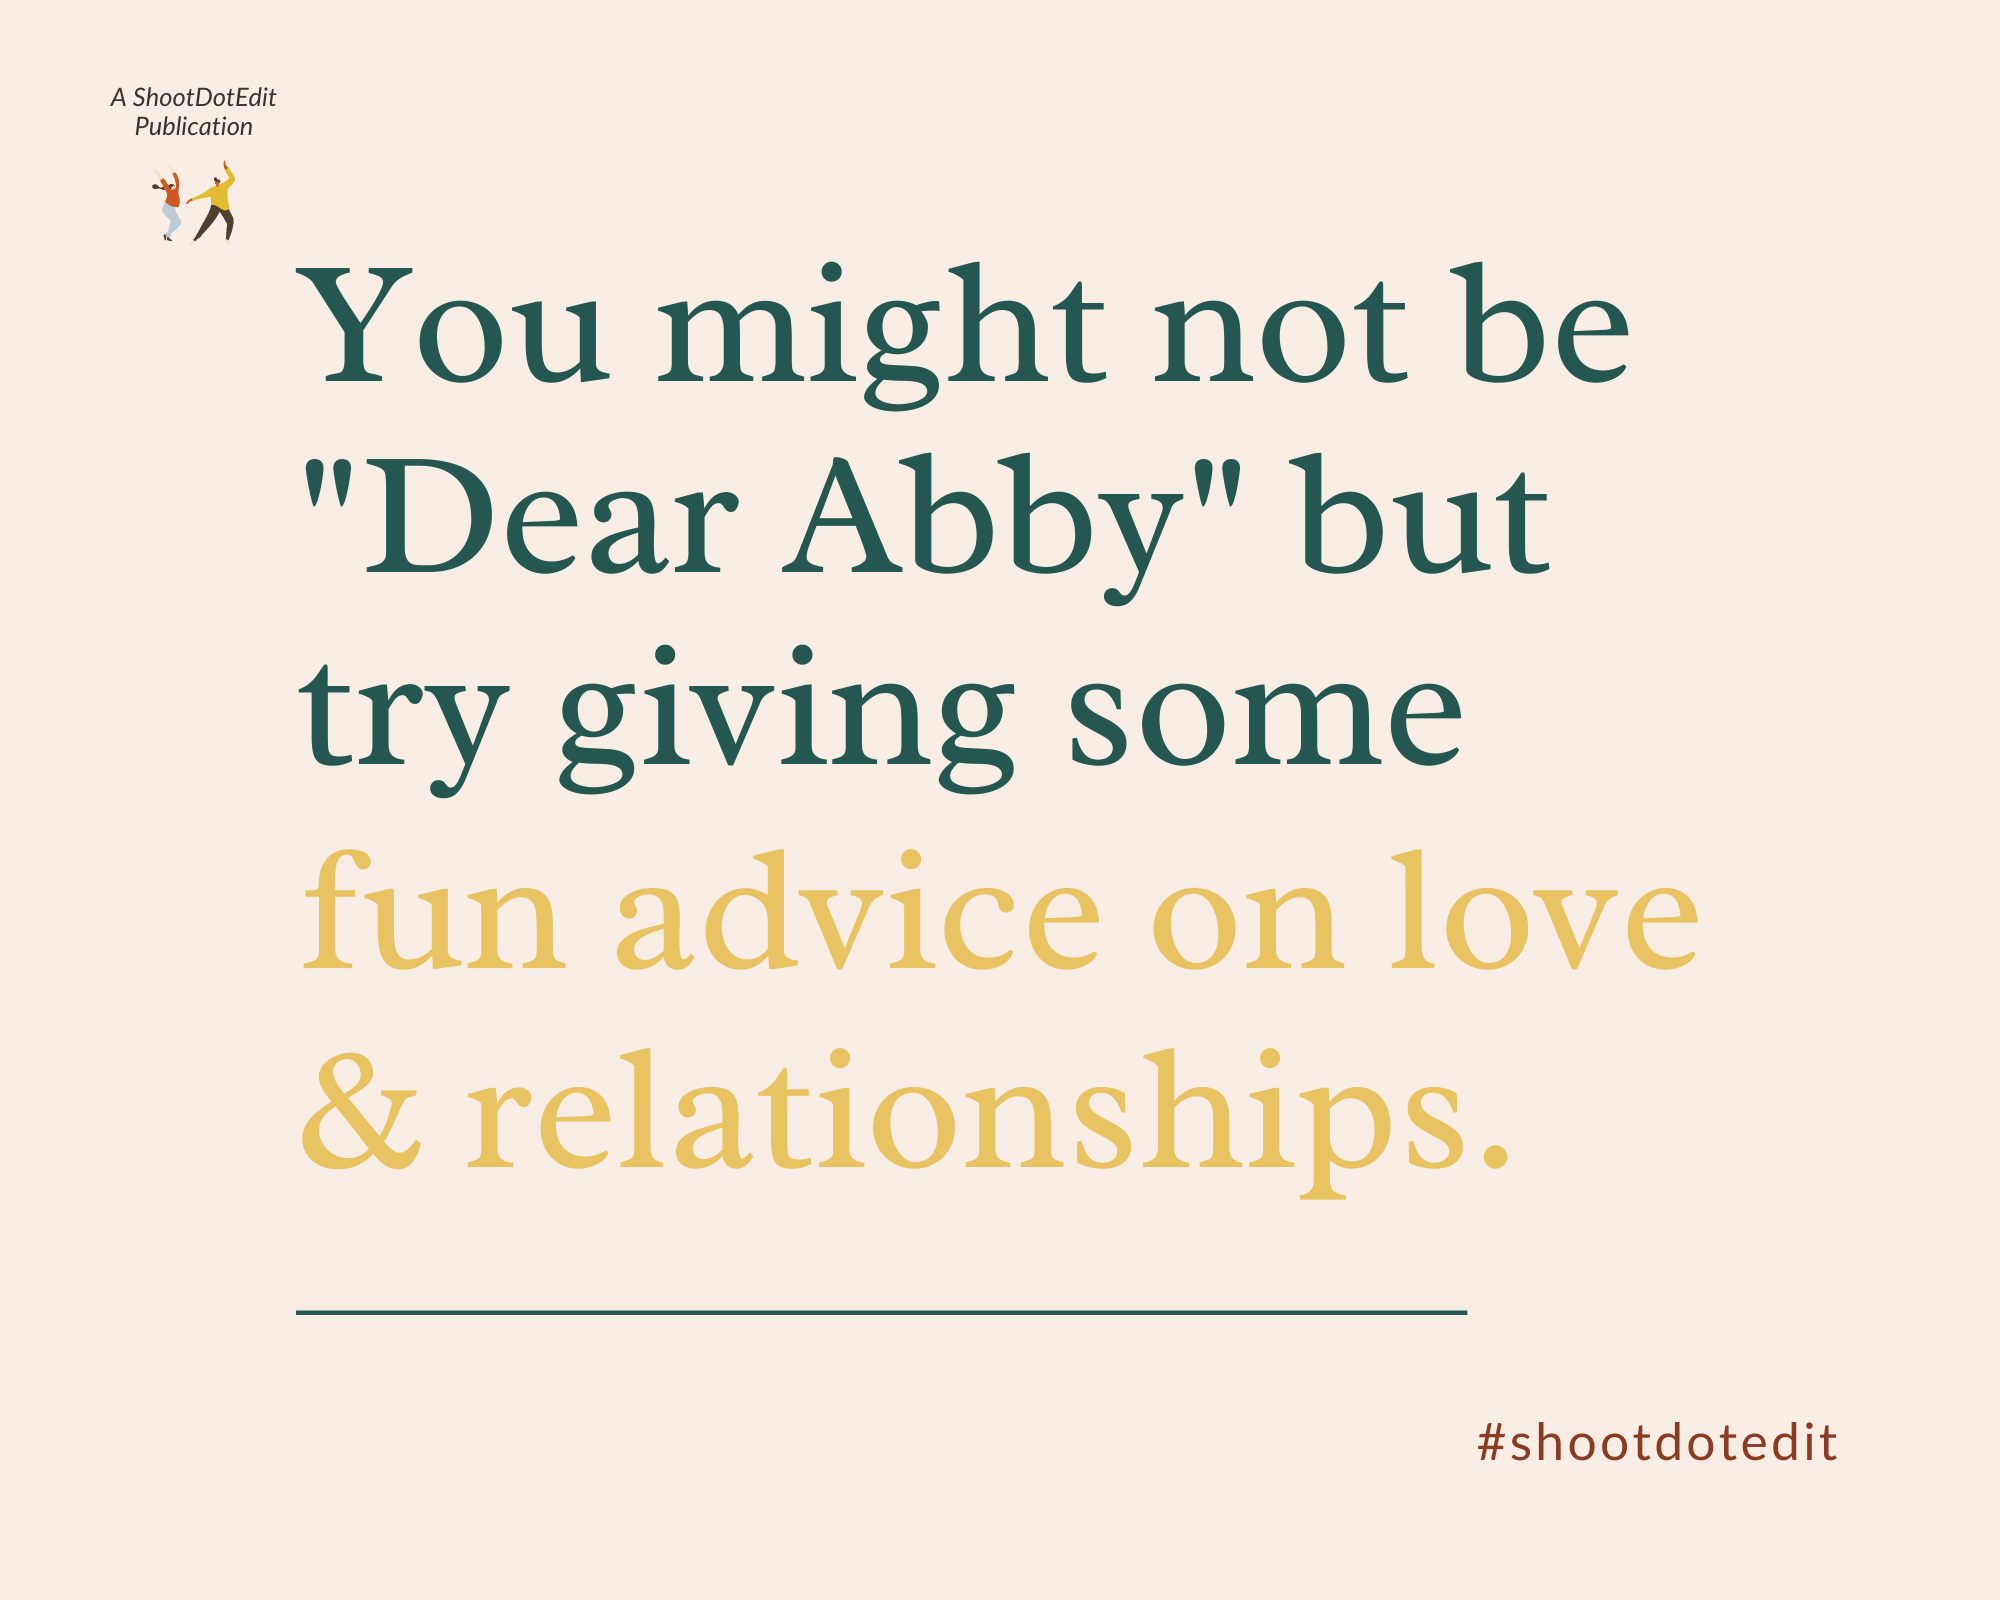 Infographic stating you might not be Dear Abby but try giving some fun advice on love and relationships